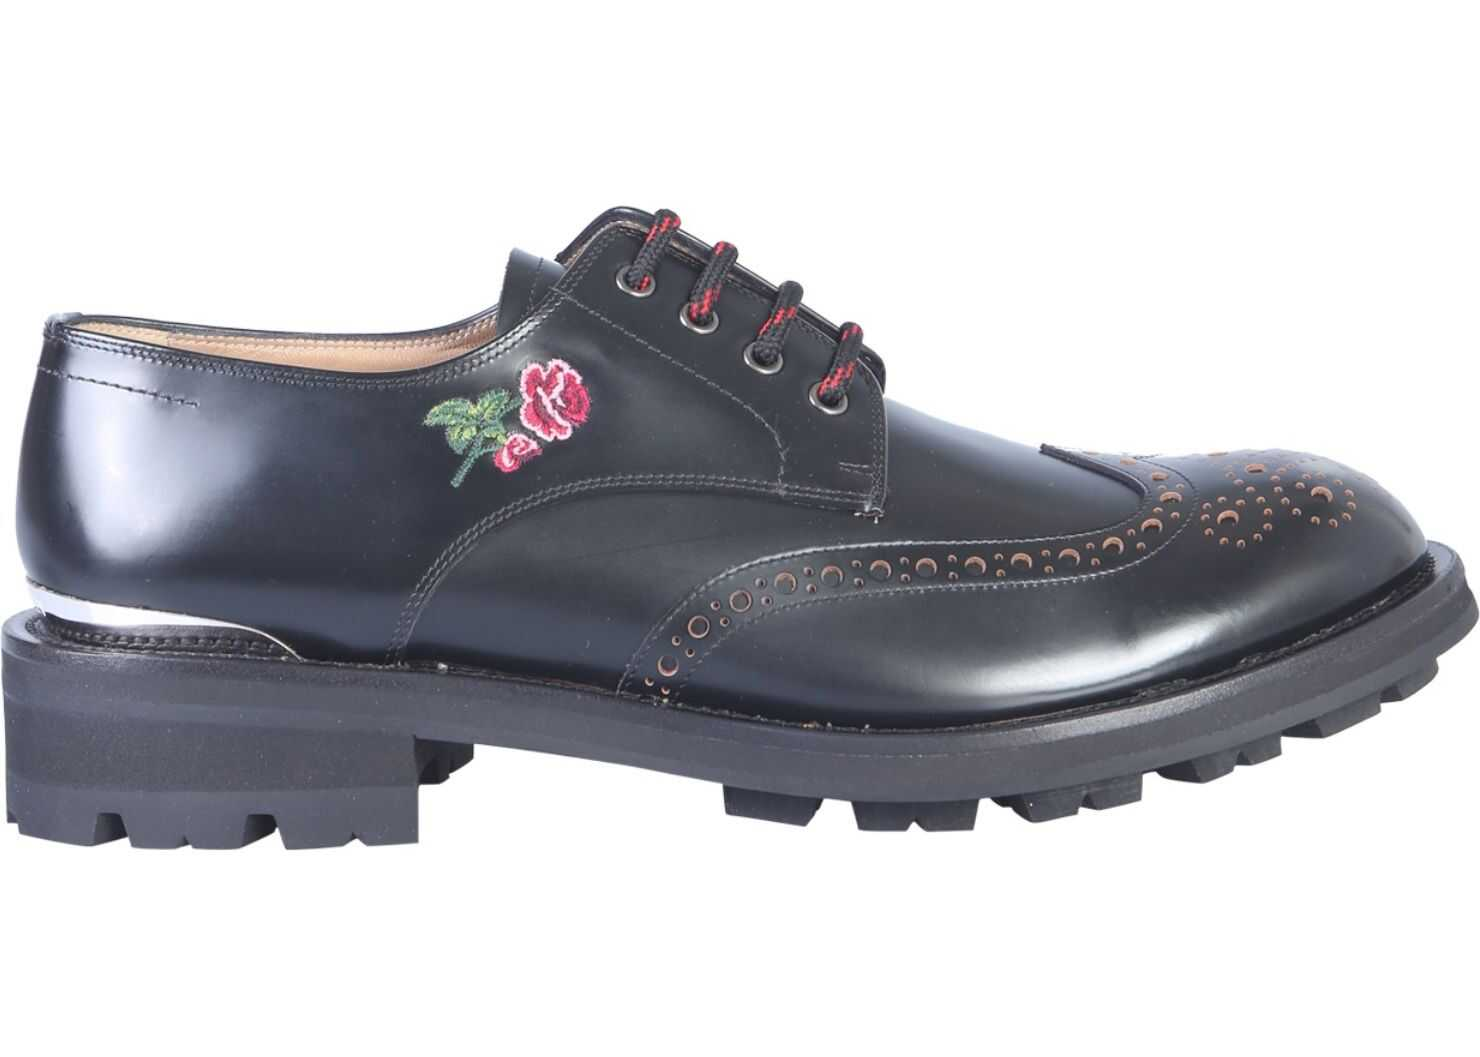 Alexander McQueen Embroidered Lace-Up BLACK